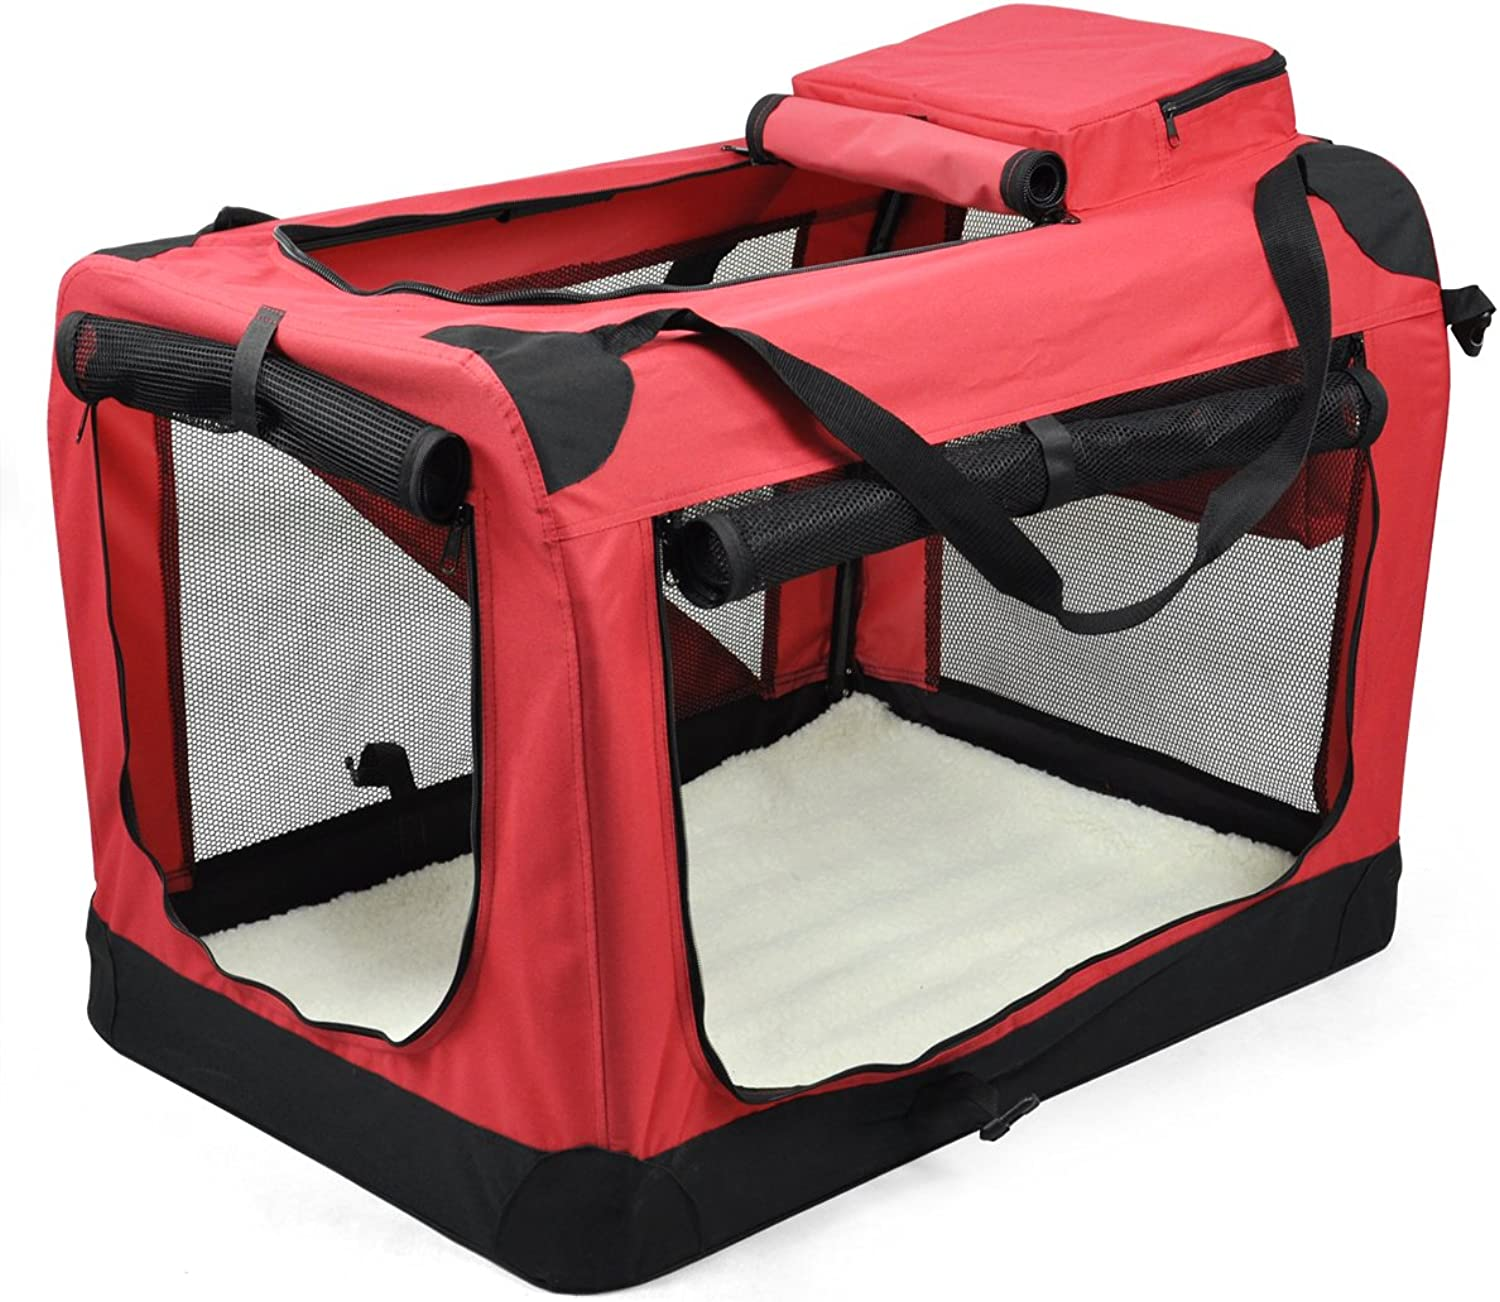 Beyondfashion Pet Dog Cat Fabric Soft Portable Carrier Foldable Kennel Cage Carrier House Bag Travel